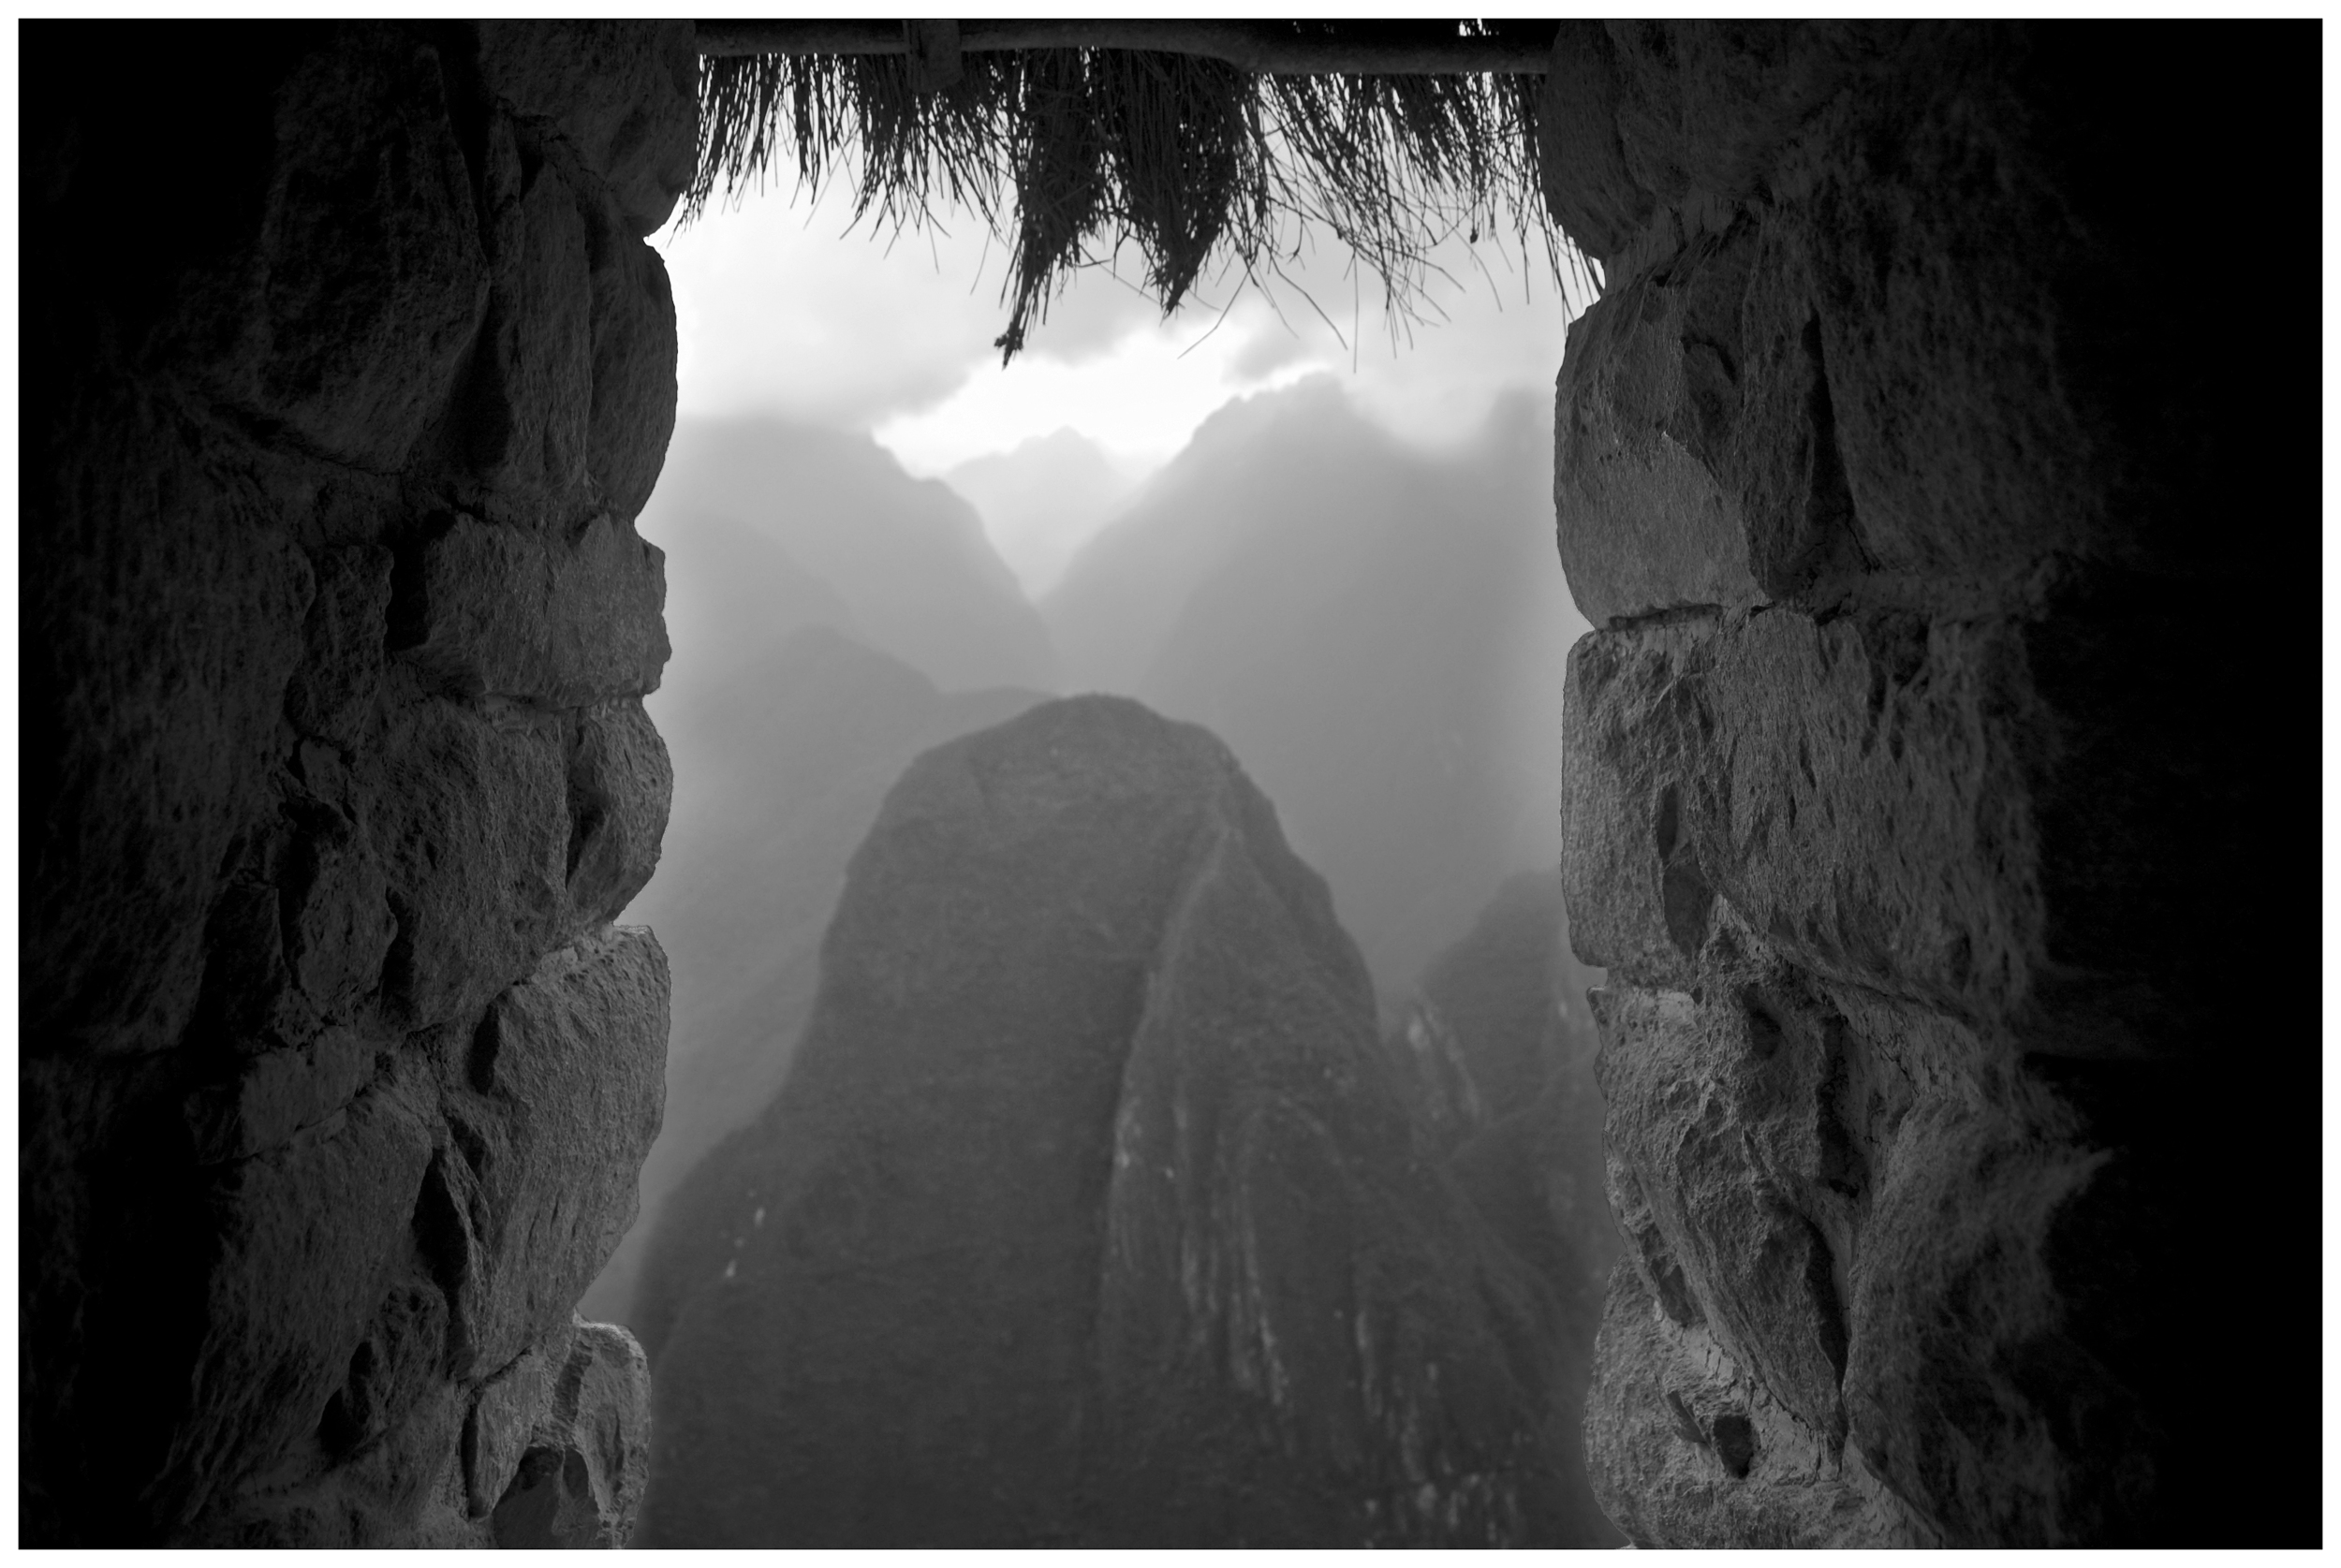 Distant peaks ascend as I peer through an existing window at Machu Picchu.